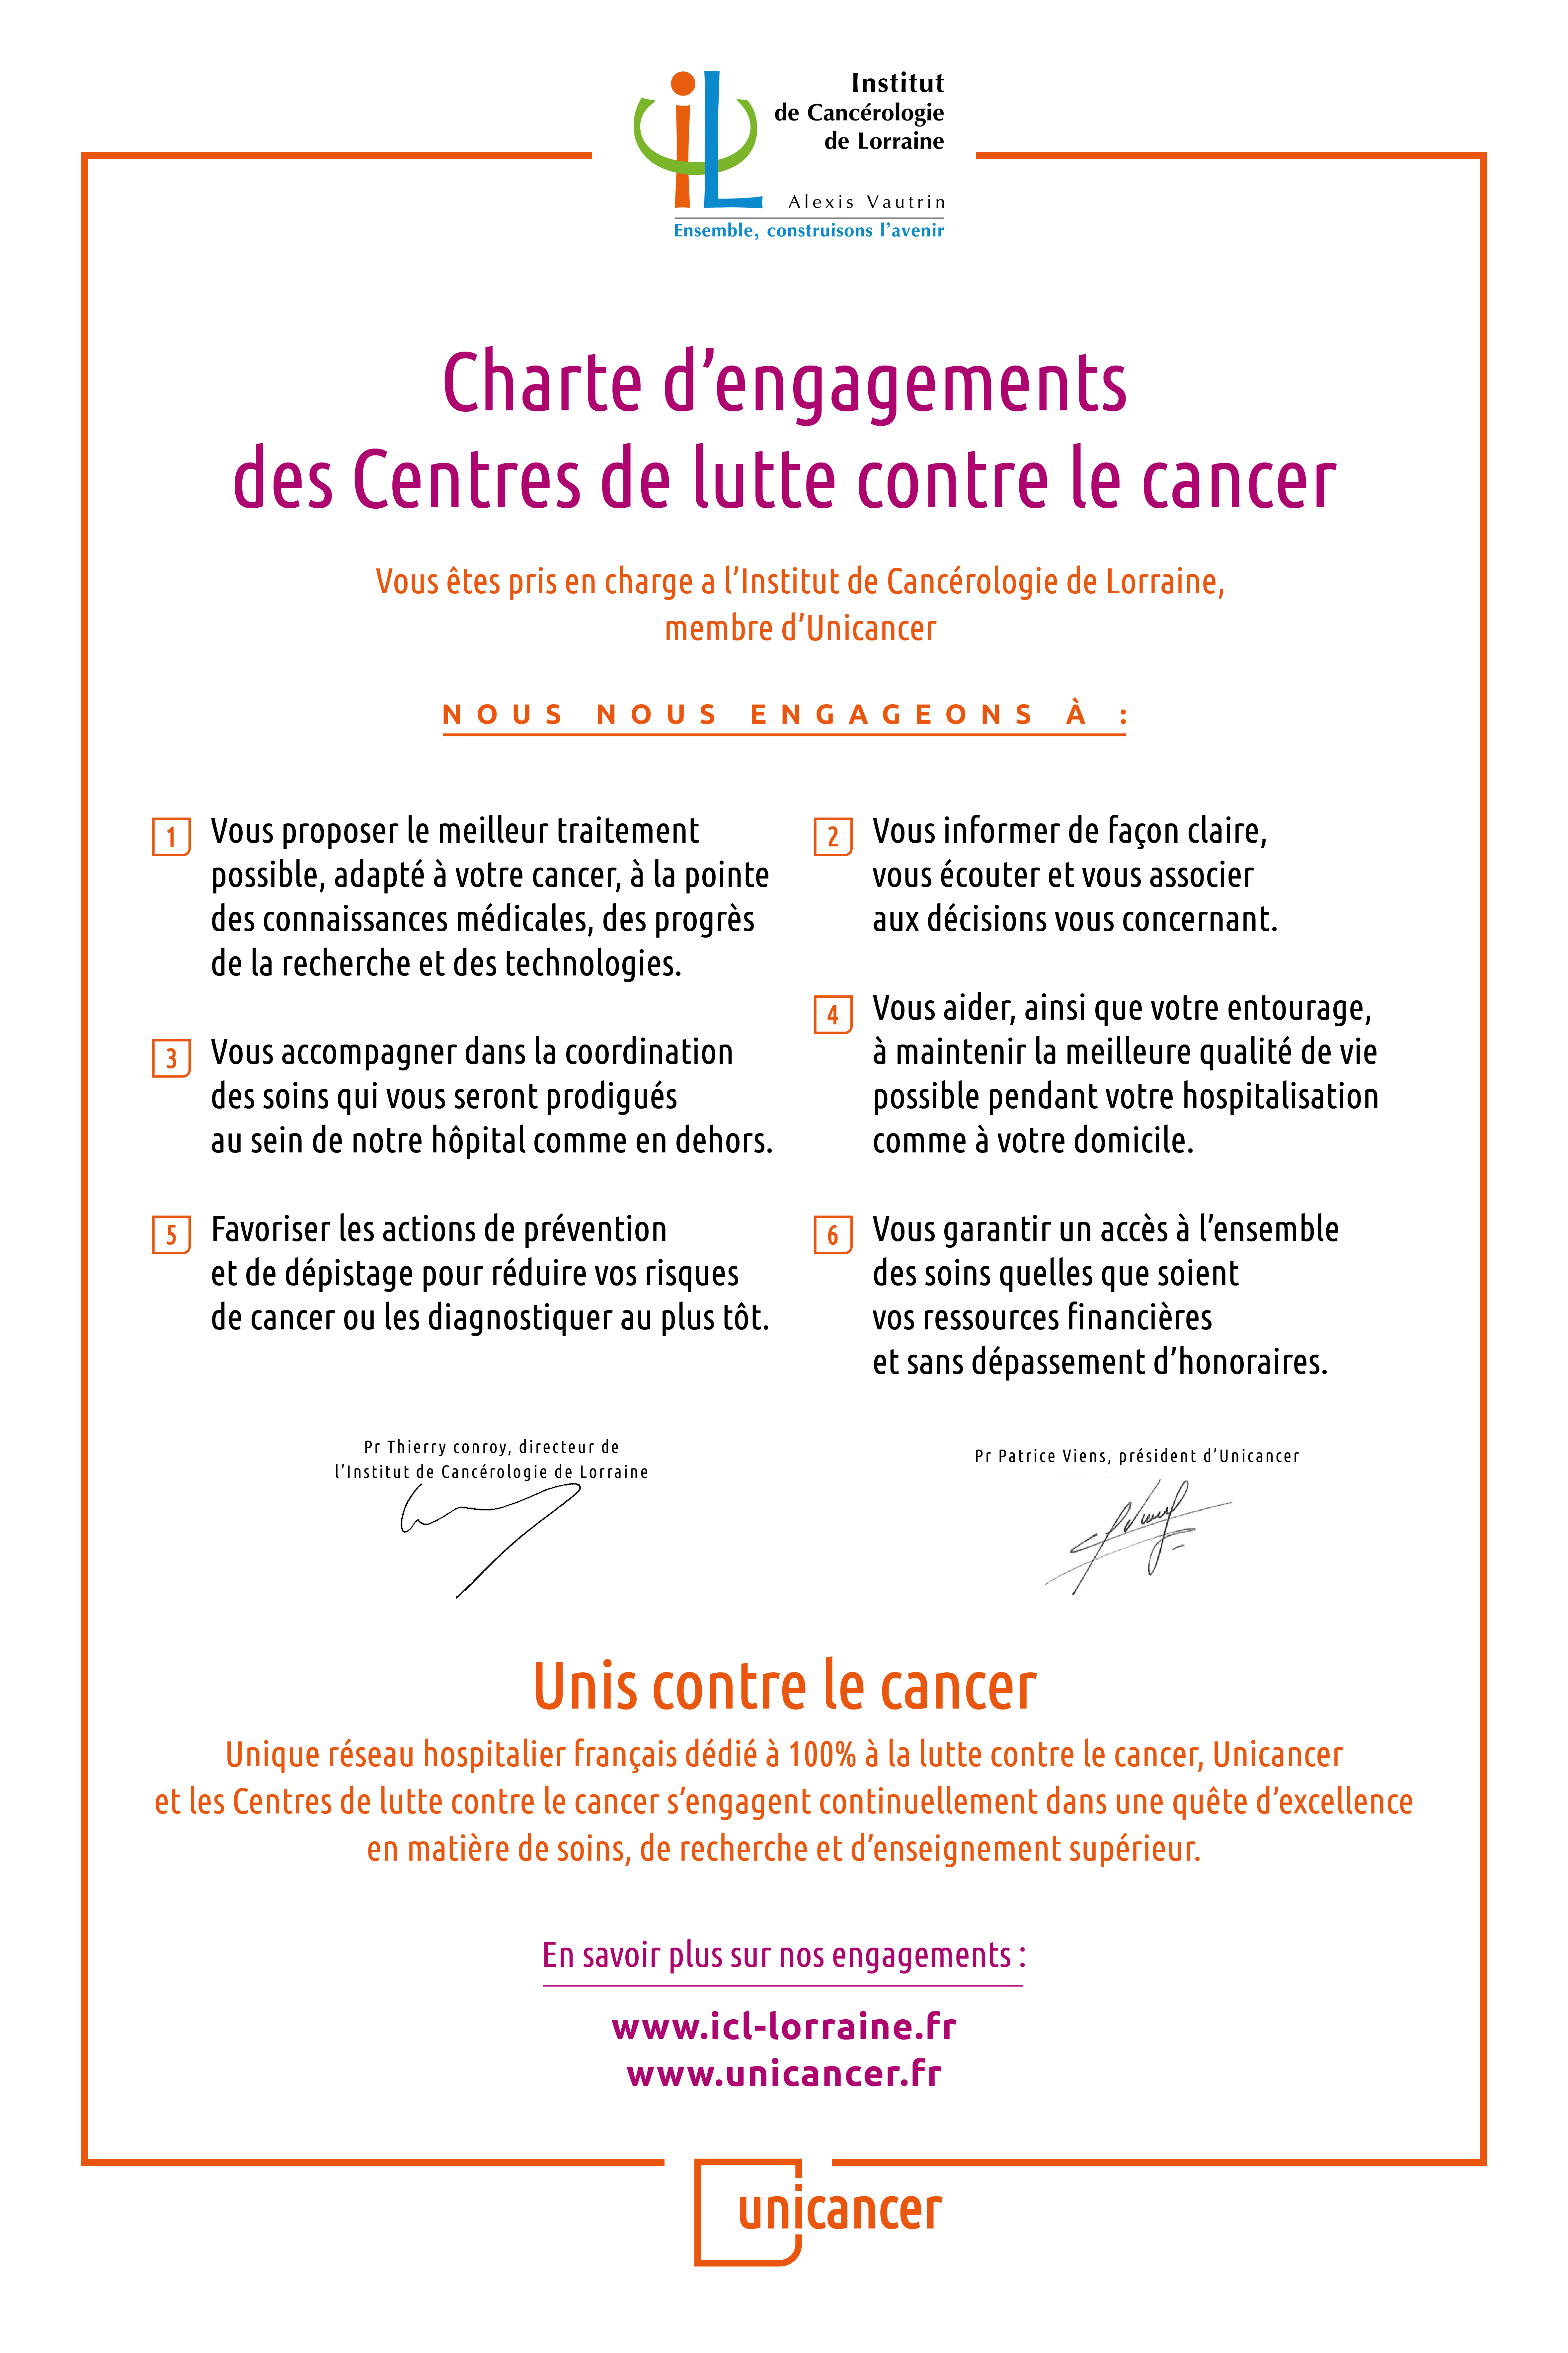 UNICANCER charte engagements Affiche ICL012020